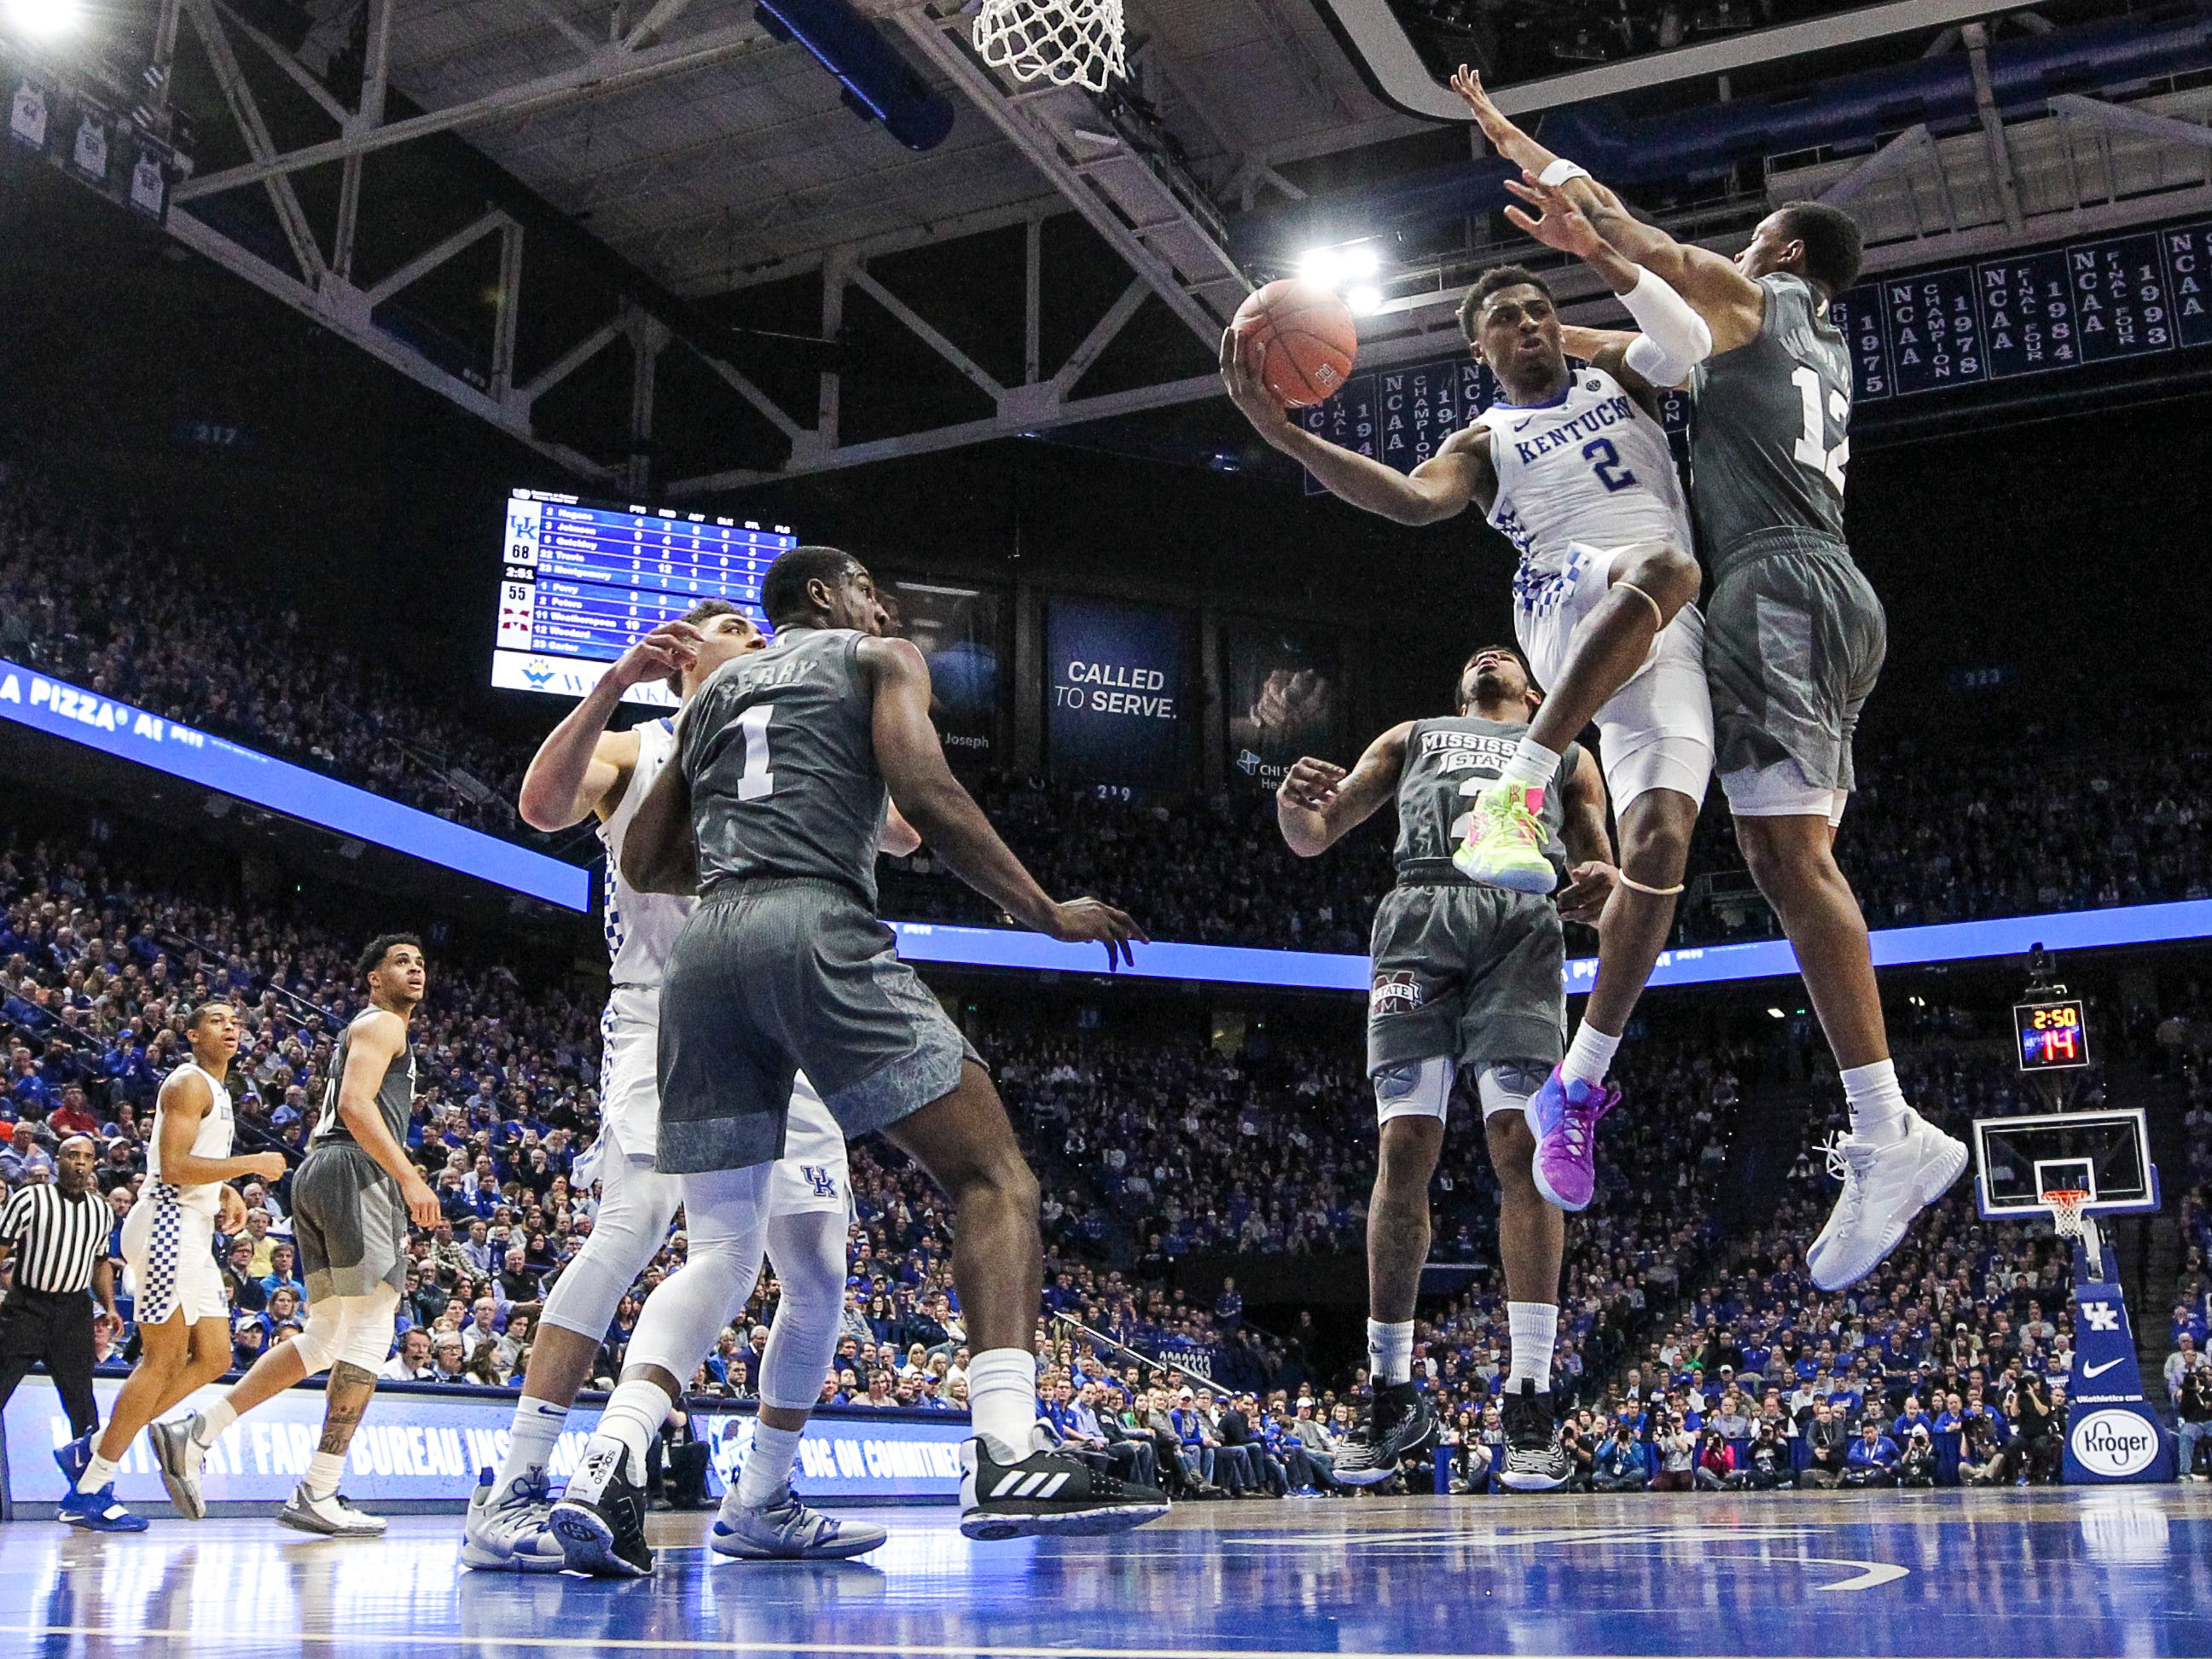 Kentucky's Ashton Hagans passes around  Mississippi State Tuesday night at Rupp Arena in Lexington. Hagans had five points but nine assists and two steals as the Wildcats won 76-55.